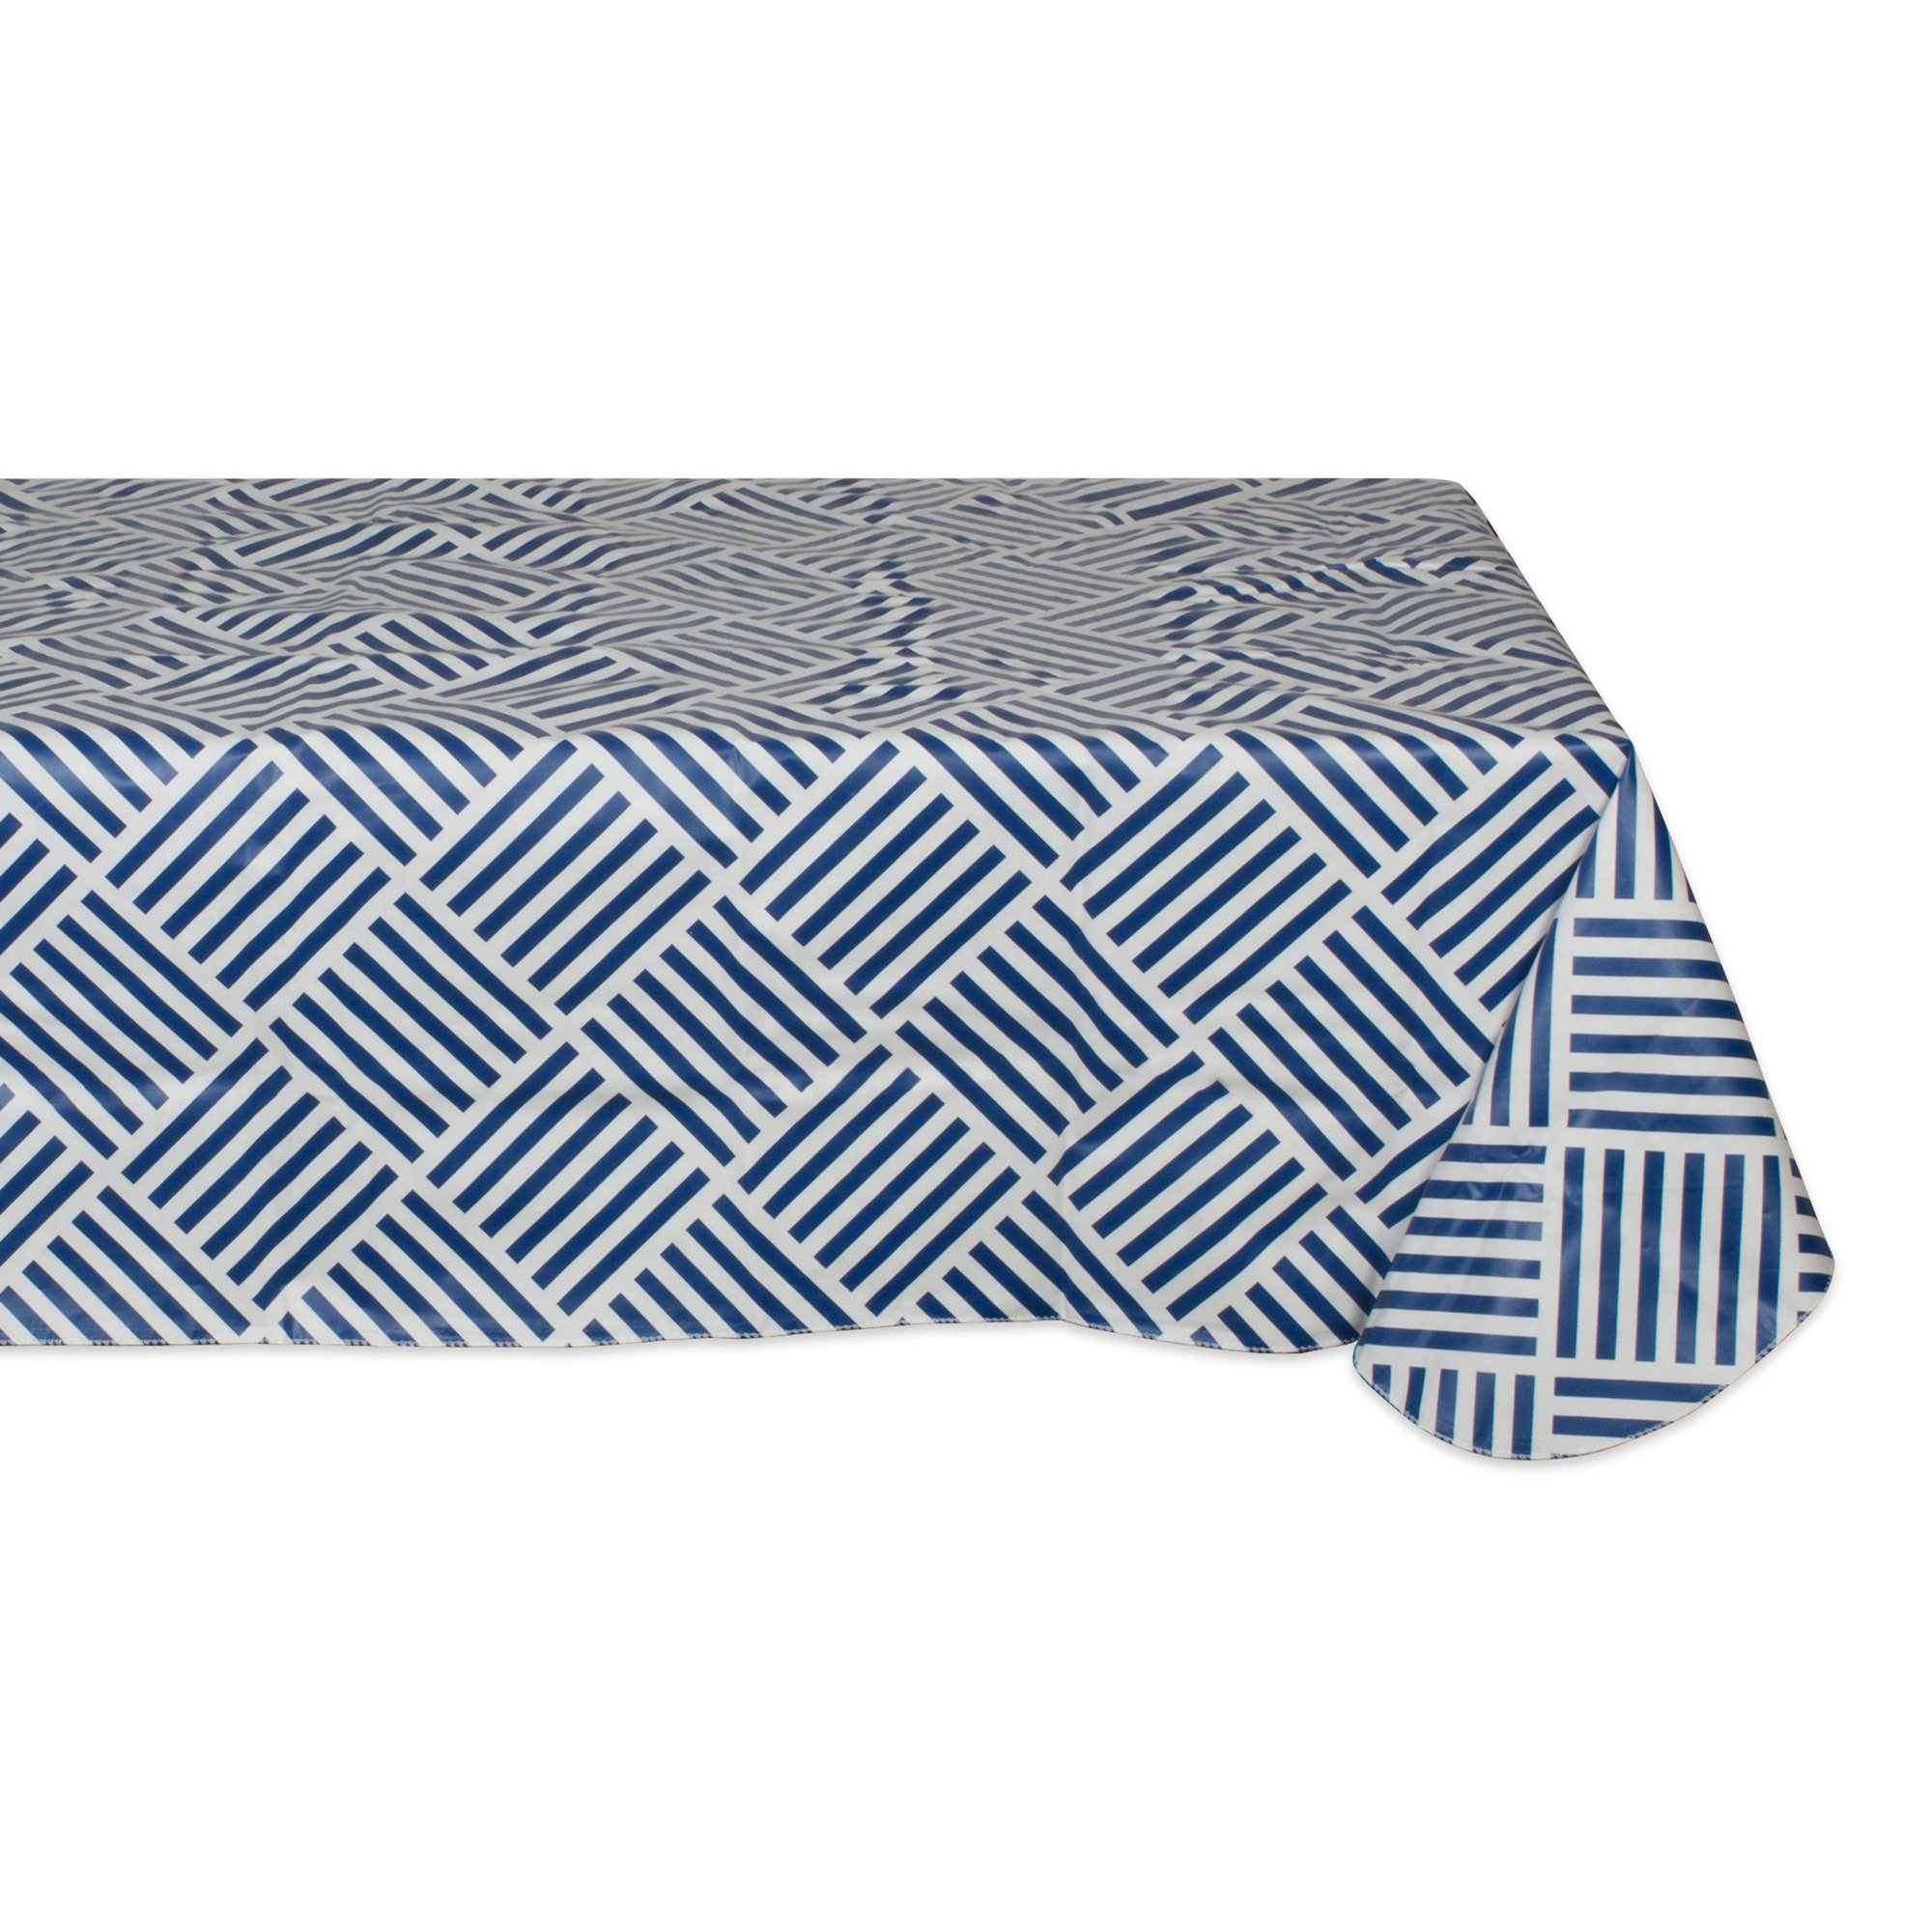 Waterproof Spill Proof Vinyl Geometric Grid Tablecloth, 60x84'', Perfect for Spring, Summer, Indoor, Outdoor Picnics & Potlucks Party Party or Everyday Use-Navy